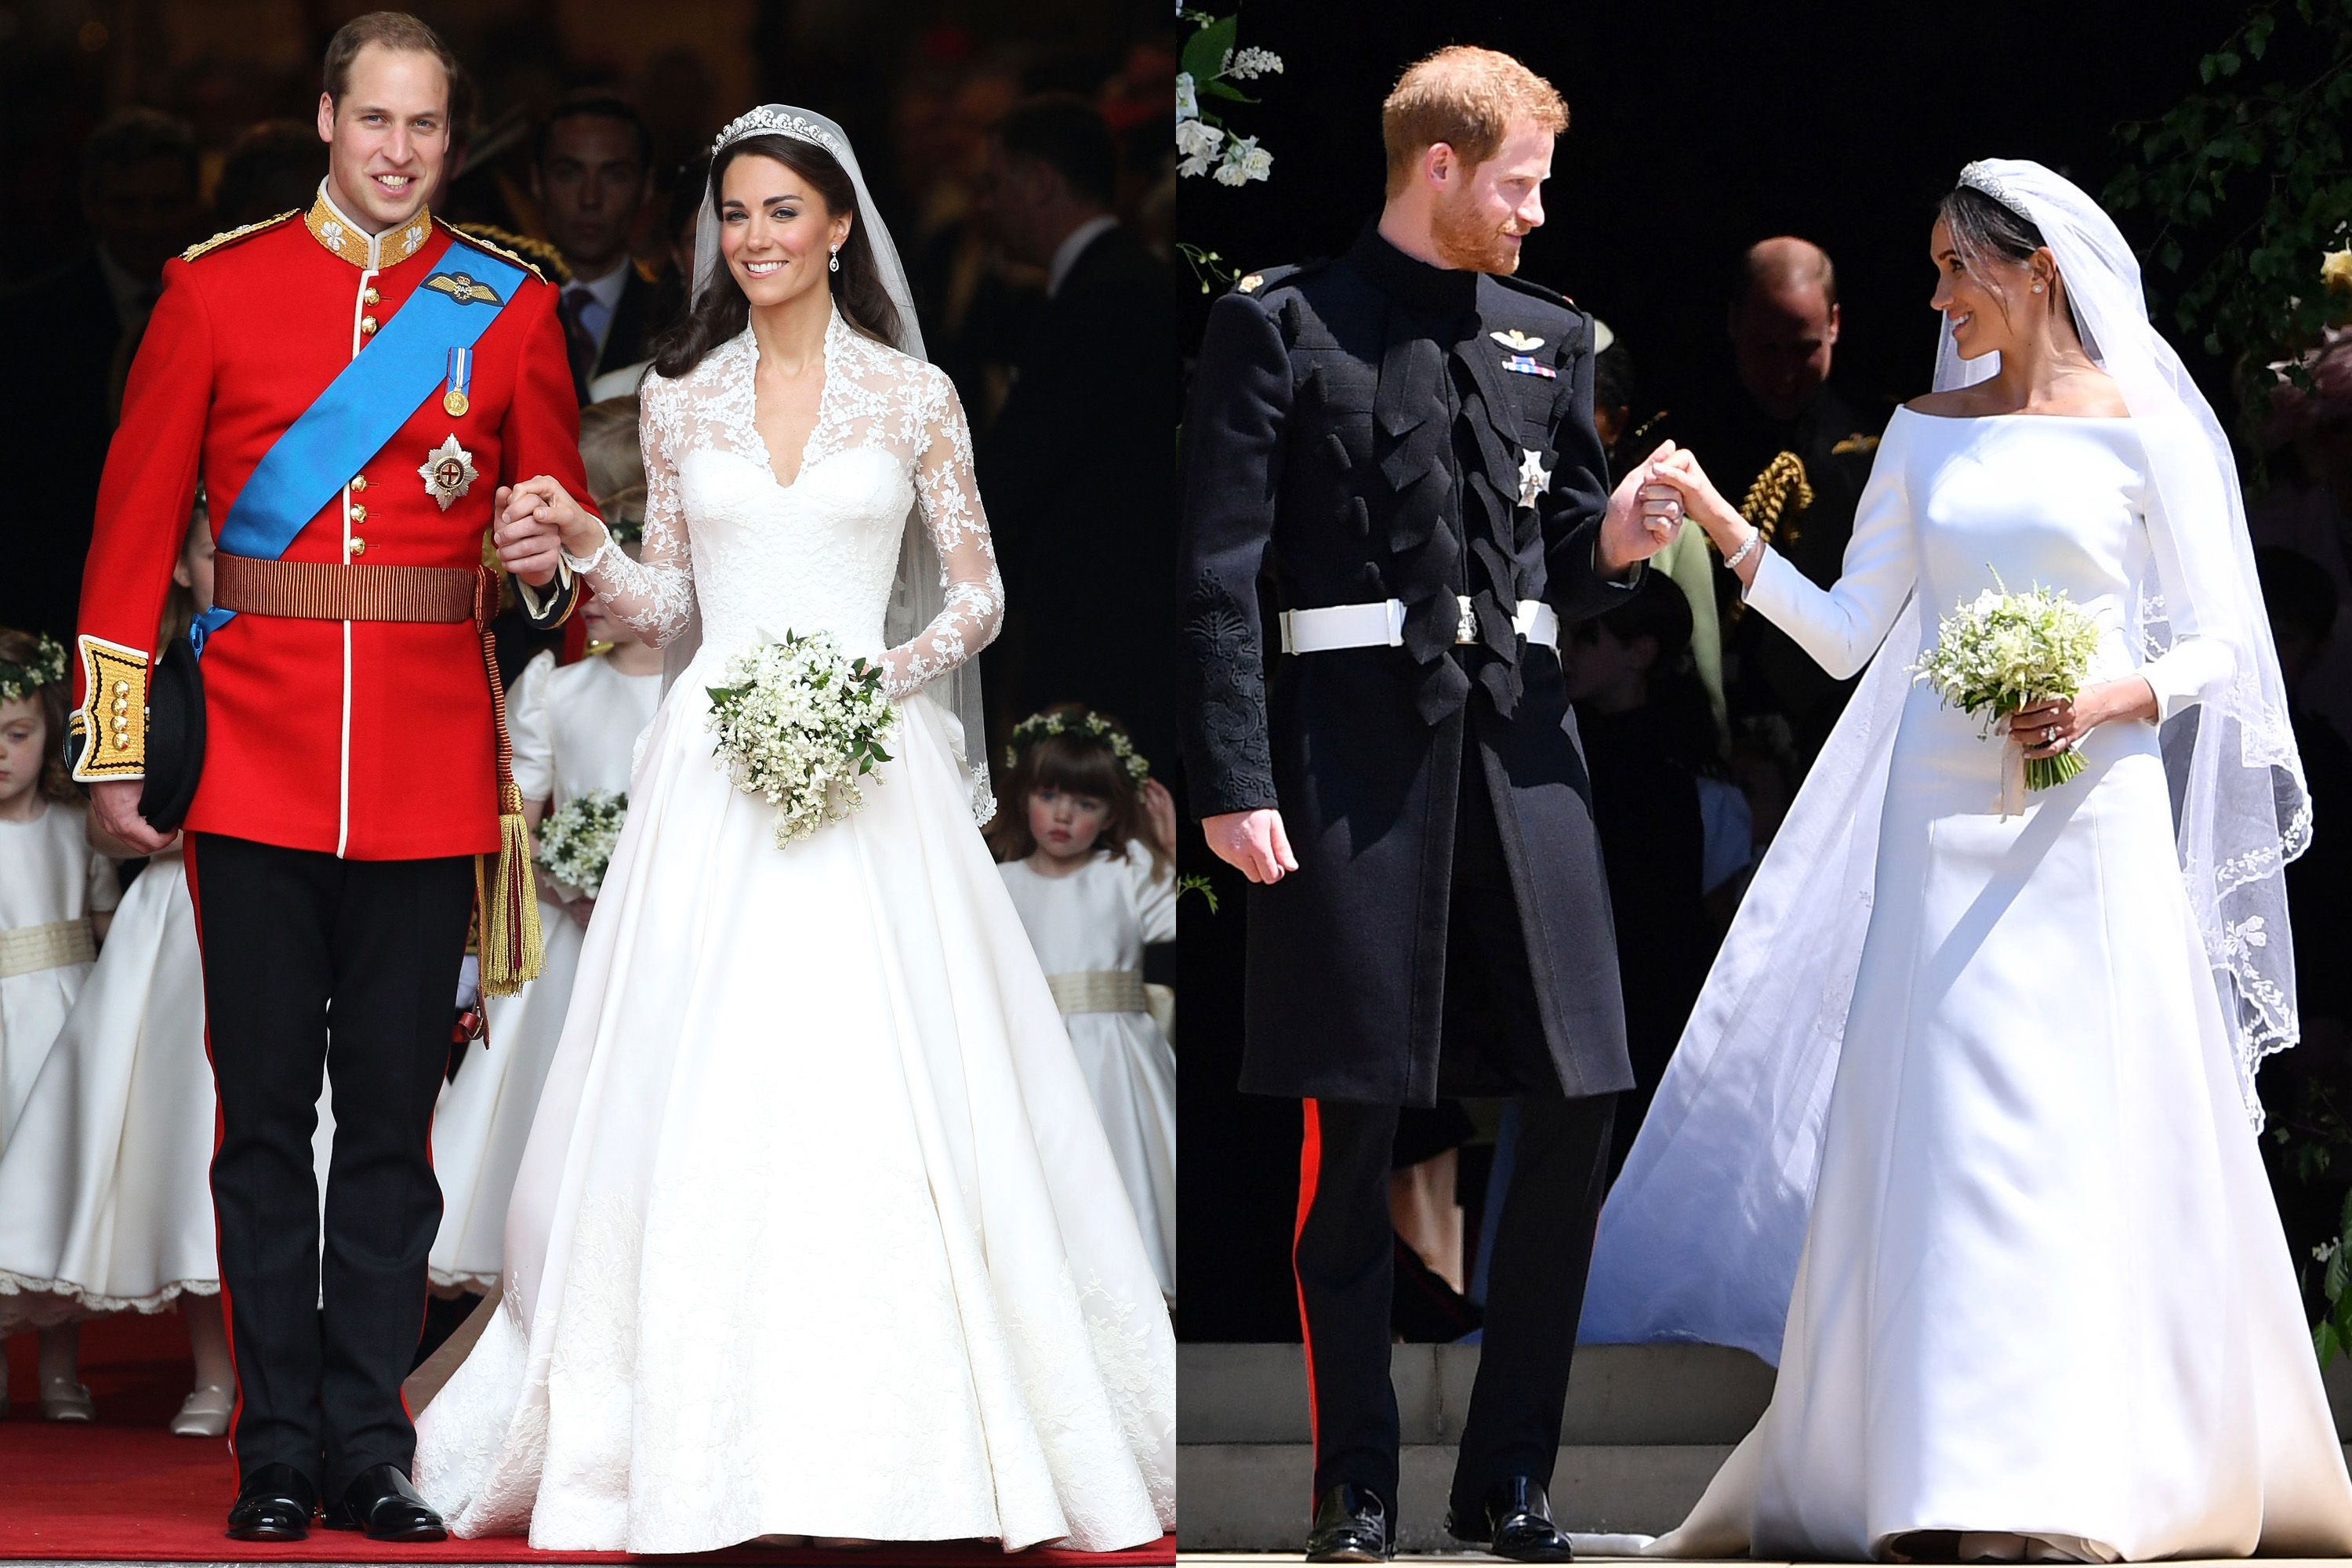 Meghan Markle\'s Royal Wedding Dress Compared To Kate Middleton\'s ...